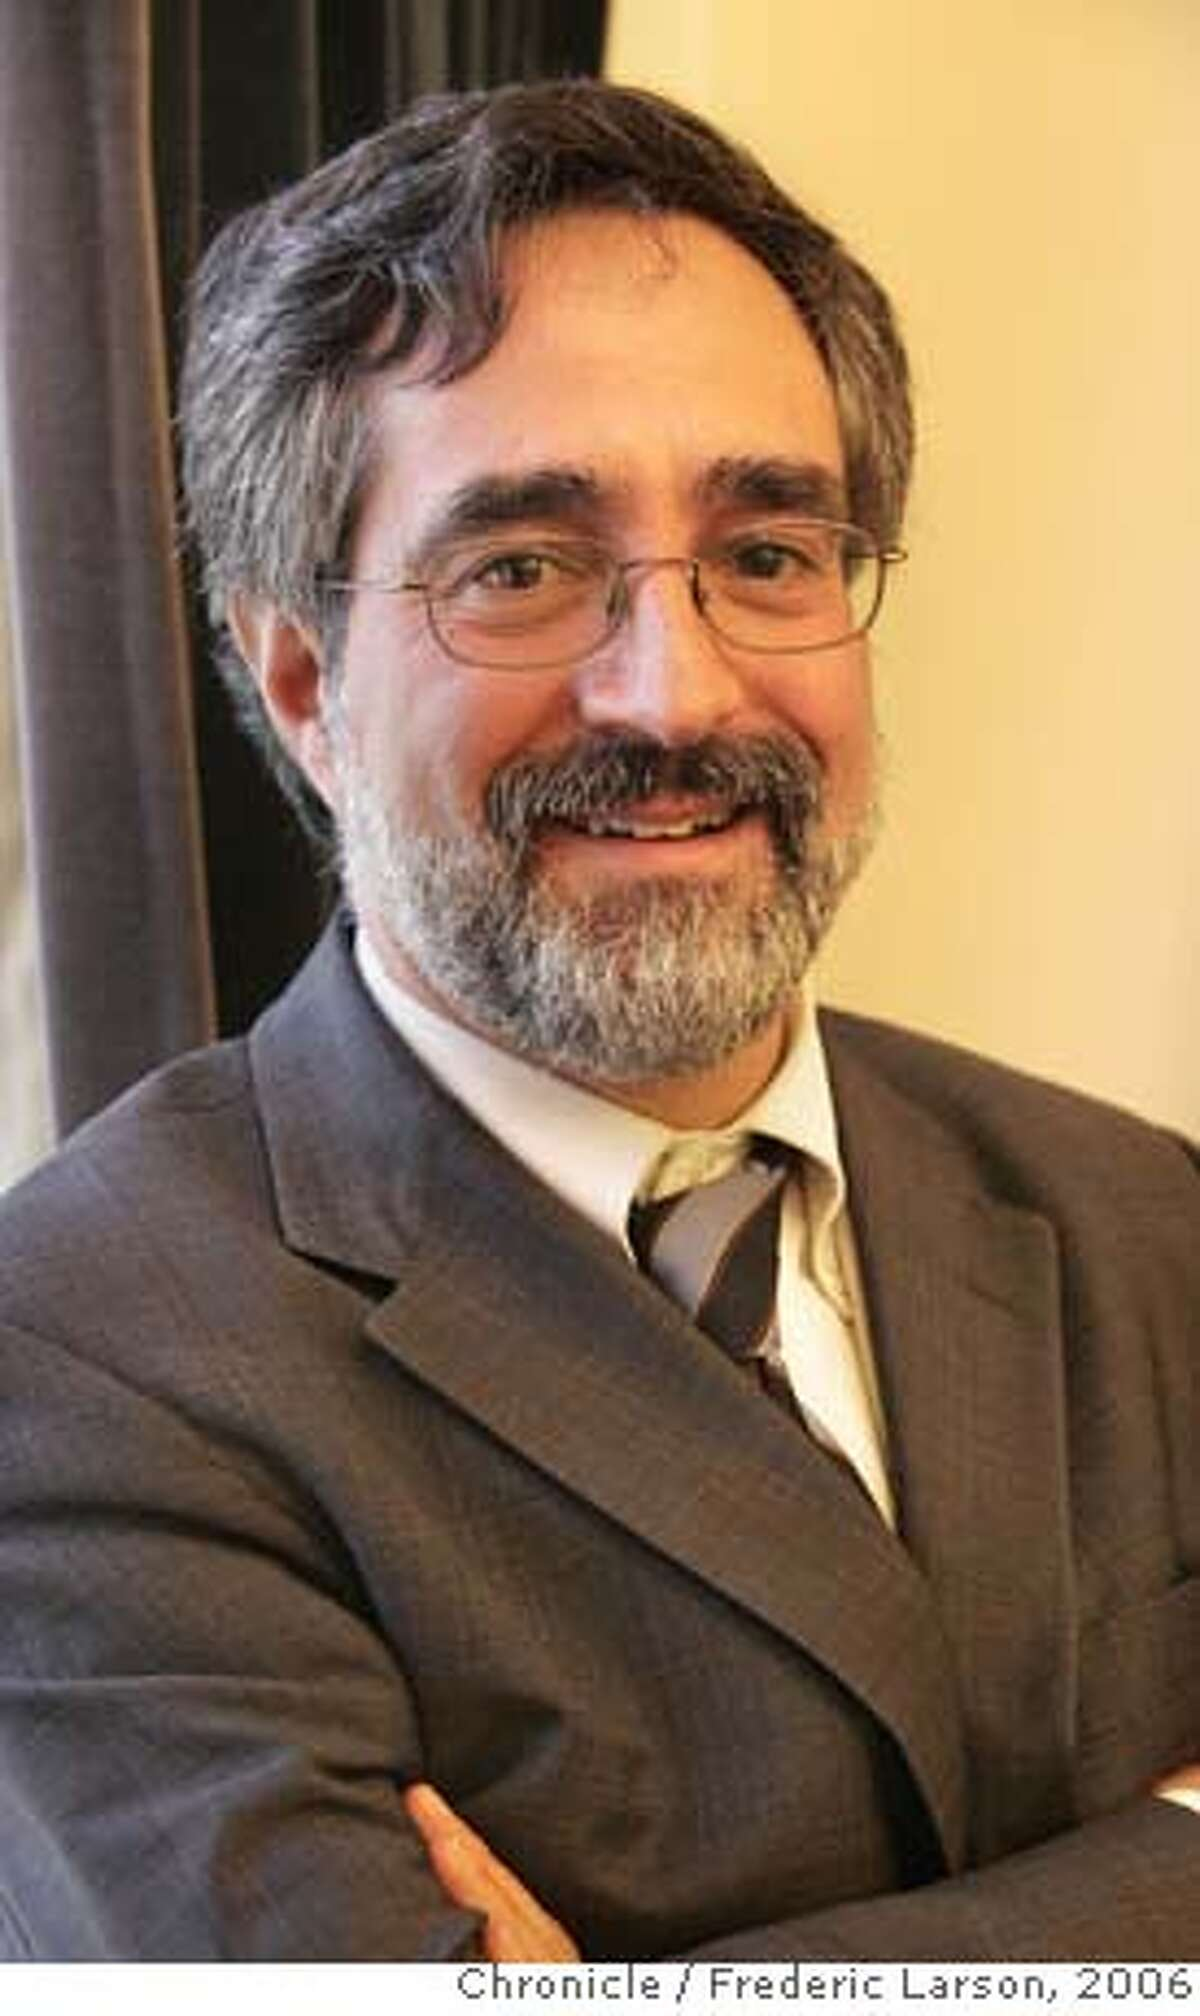 Aaron Peskin, President of the Board of Supervivors who frequents the Cafe Trieste Cafe in Northbeach where he met Roy Mottini. 11/30/06 {Photographed by Frederic Larson} 1/24/07 {Photographed by Frederic Larson} Ran on: 05-22-2007 Aaron Peskin, president of the Board of Supervisors, will present a plan to the full board today to overhaul the Muni system. Ran on: 05-26-2007 Roy Mottini has returned to Caffe Trieste after a tough year that saw him evicted and hospitalized. Ran on: 07-06-2007 Aaron Peskin now pushing a compromise with union officials. ALSO Ran on: 07-26-2007 Ran on: 08-01-2007 Supervisor Aaron Peskin says his plan wont fix all of Munis many troubles, but it will help. ALSO Ran on: 10-06-2007 Attorney Steven Gruel Ran on: 10-06-2007 Attorney Steven Gruel Ran on: 10-25-2007 Jared Blumenfeld Ran on: 10-31-2007 Aaron Peskin, president of the Board of Supervisors, controls the committee that received the donation. Ran on: 10-31-2007 Aaron Peskin, president of the Board of Supervisors, controls the committee that received the donation. Ran on: 12-24-2007 Jake McGoldrick District One MANDATORY CREDIT FOR PHOTOGRAPHER AND SAN FRANCISCO CHRONICLE/NO SALES-MAGS OUT